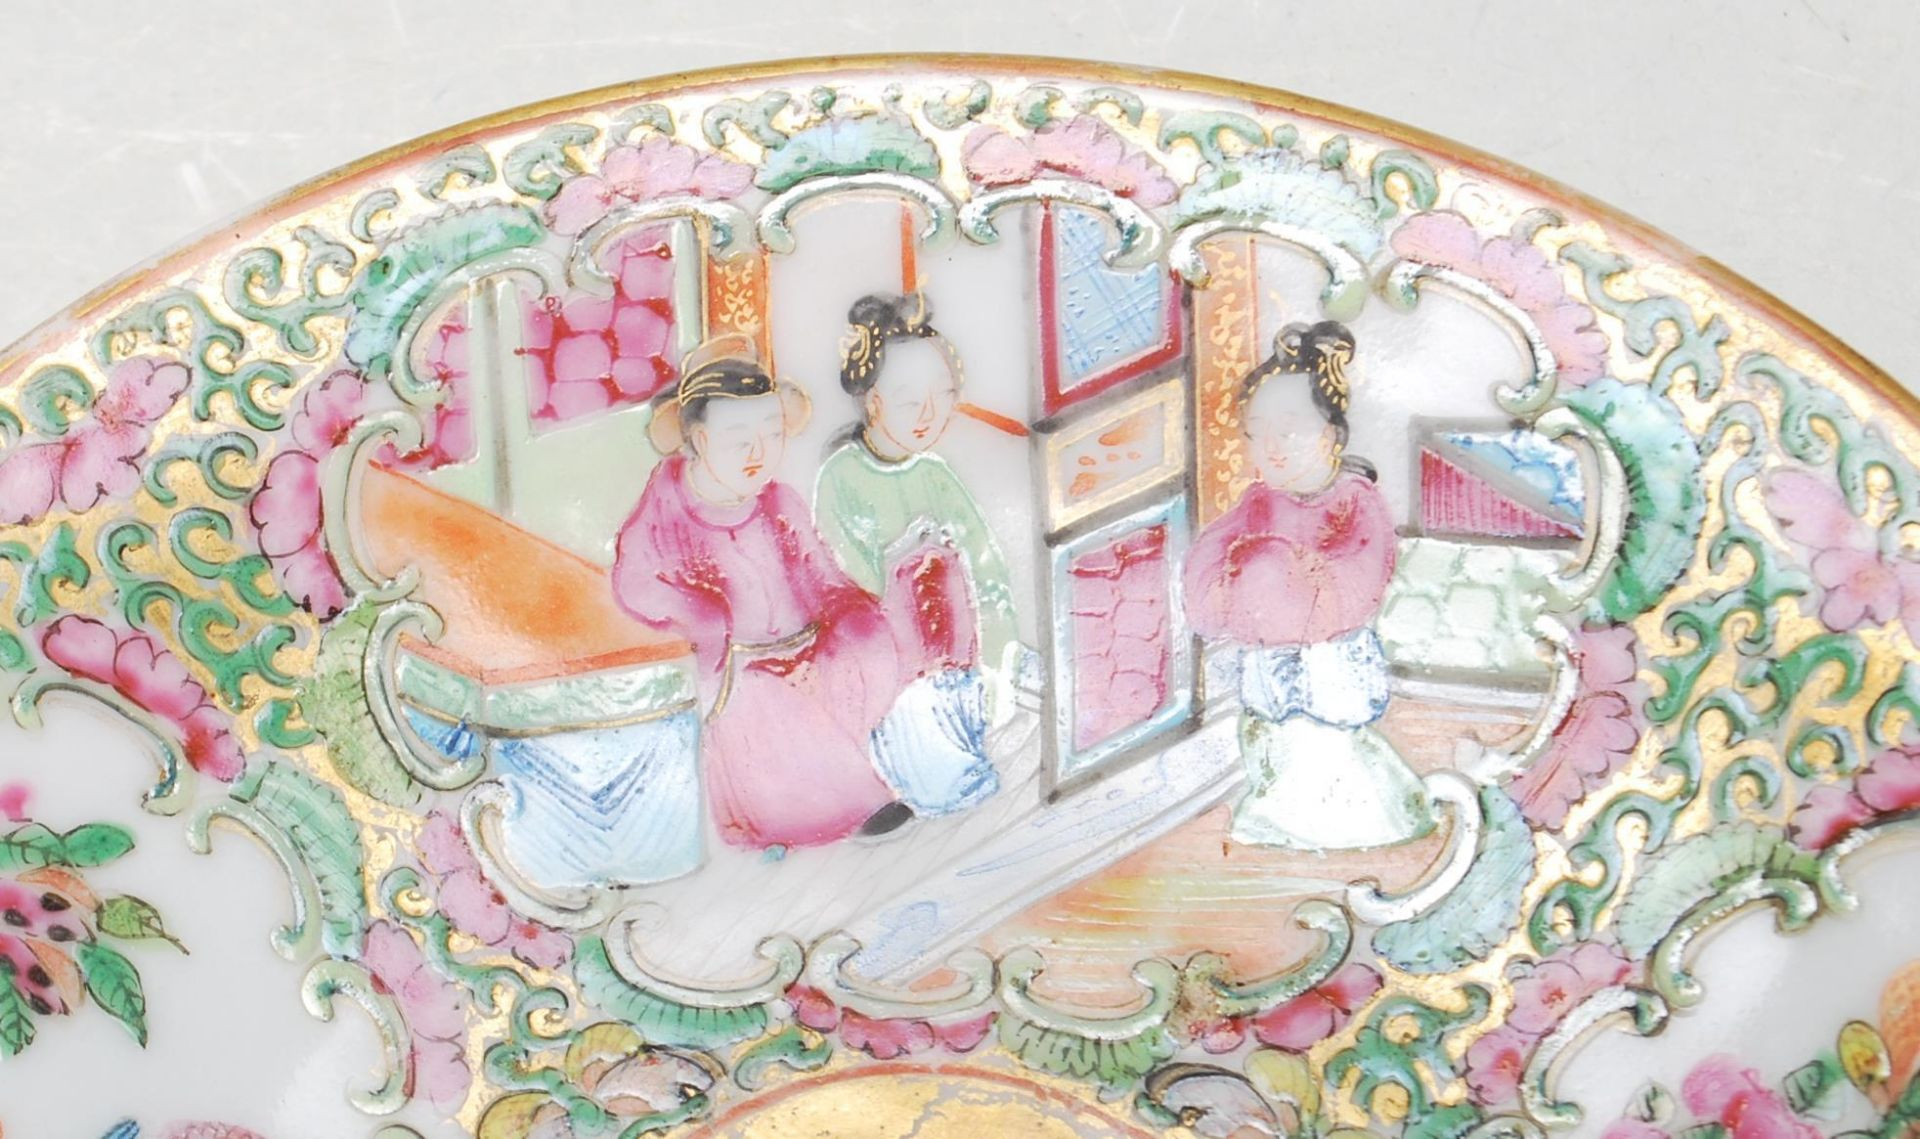 19TH CENTURY CANTON FAMILLE ROSE PLATE TOGETHER WITH A - Image 3 of 9